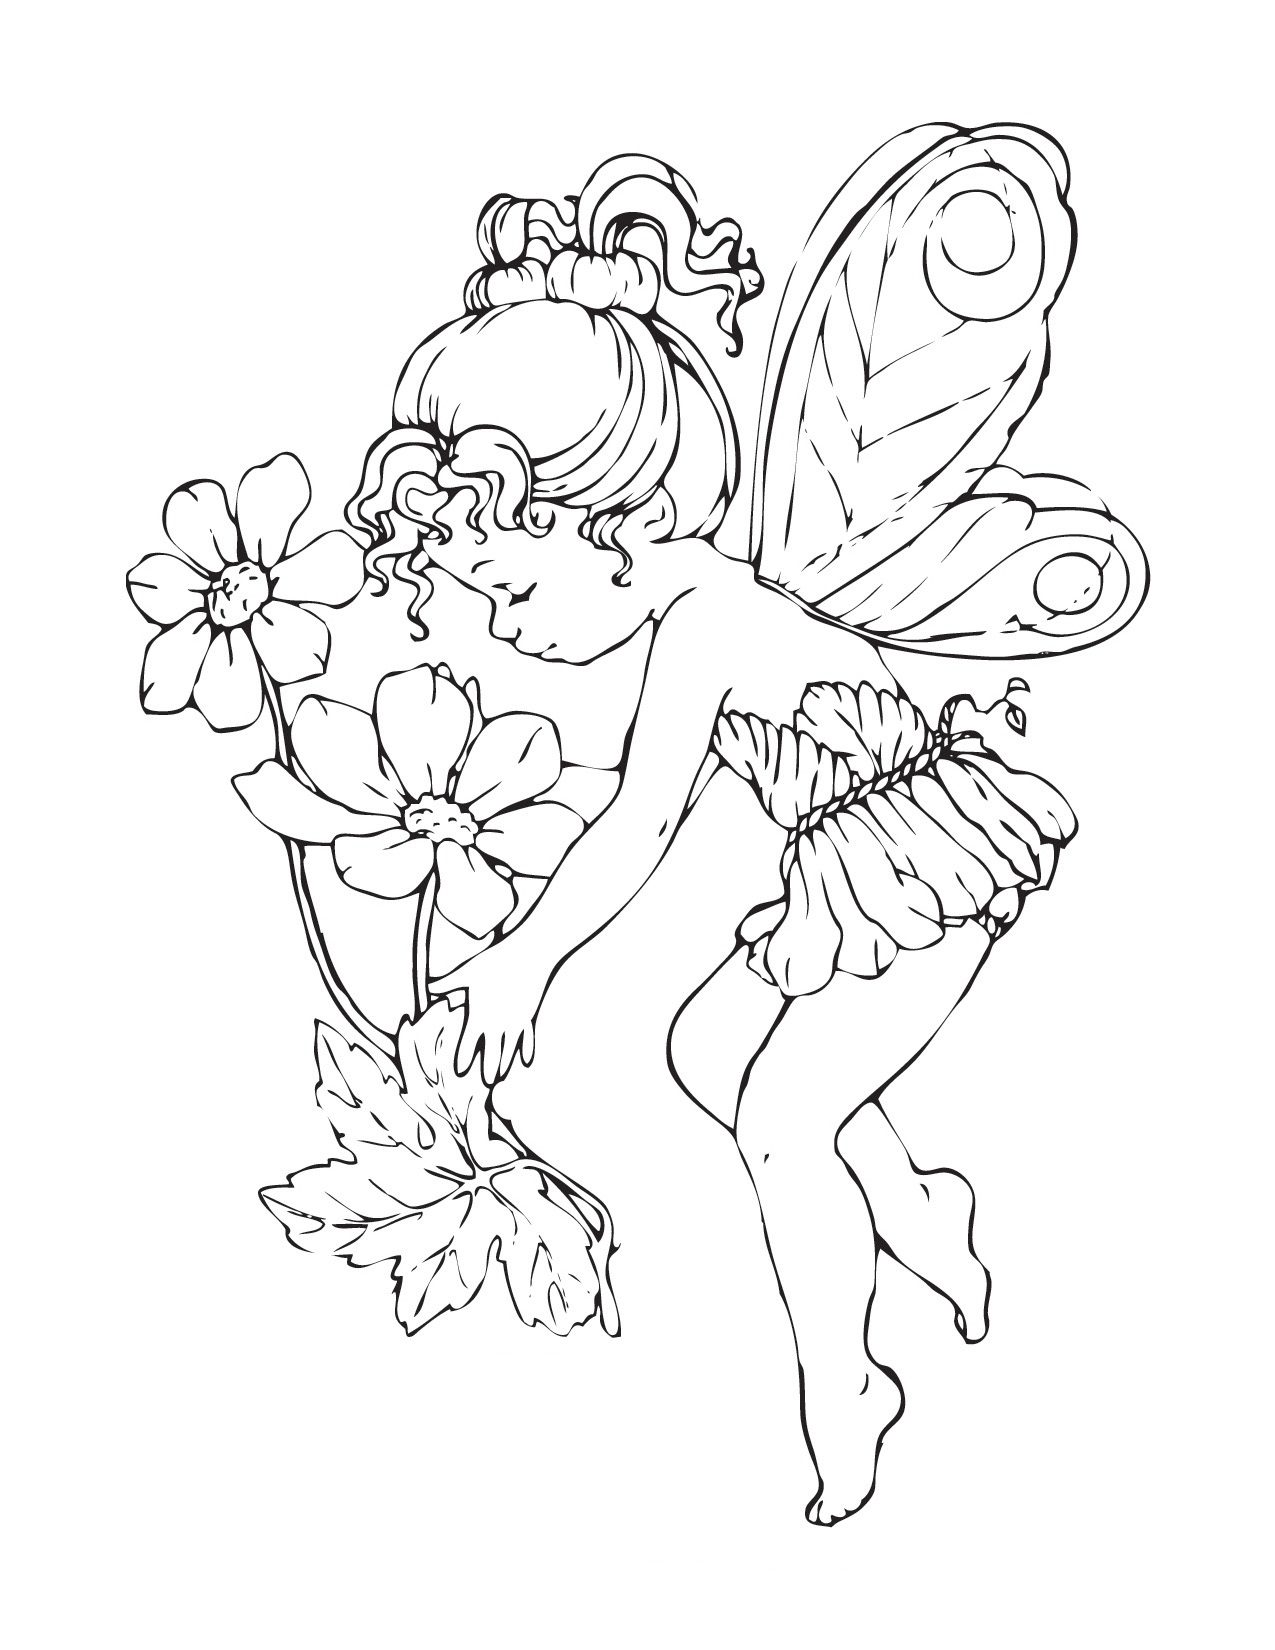 coloring pages kids - free printable fairy coloring pages for kids